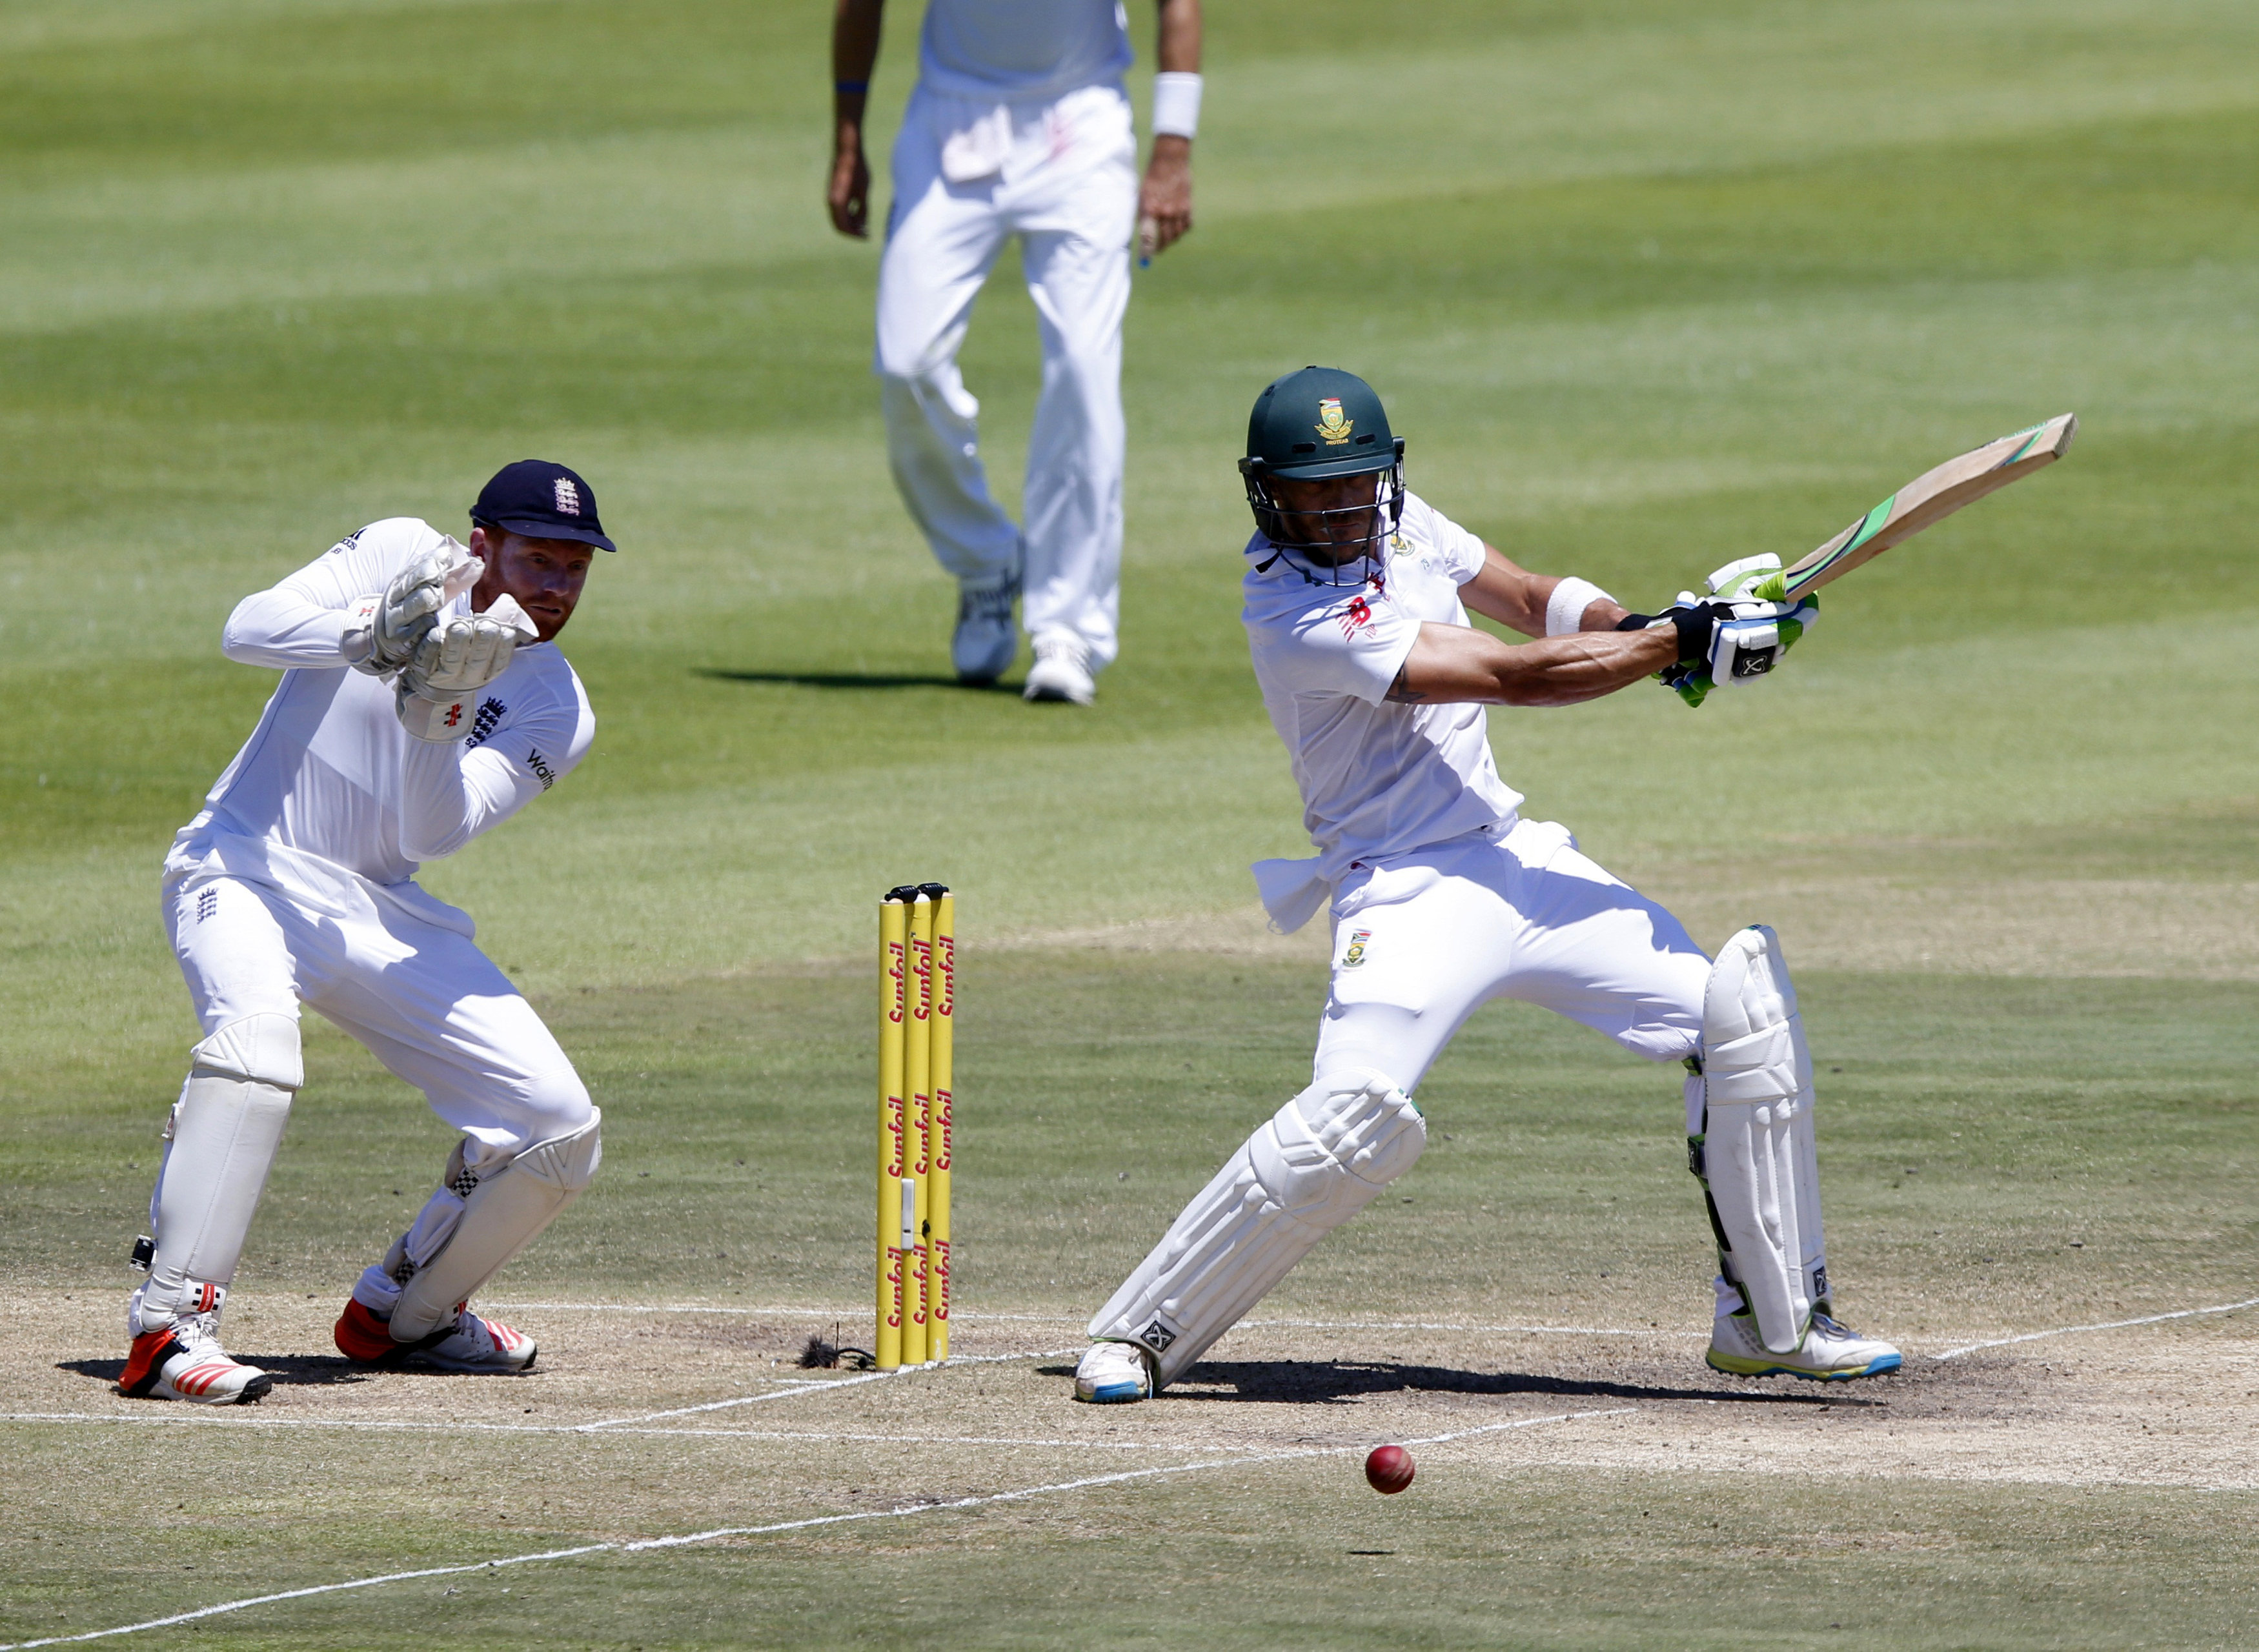 South Africa's Faf du Plessis (R) plays a shot as England's Jonny Bairstow looks on during the second cricket test match in Cape Town, South Africa, January 5, 2016. Photo: Reuters